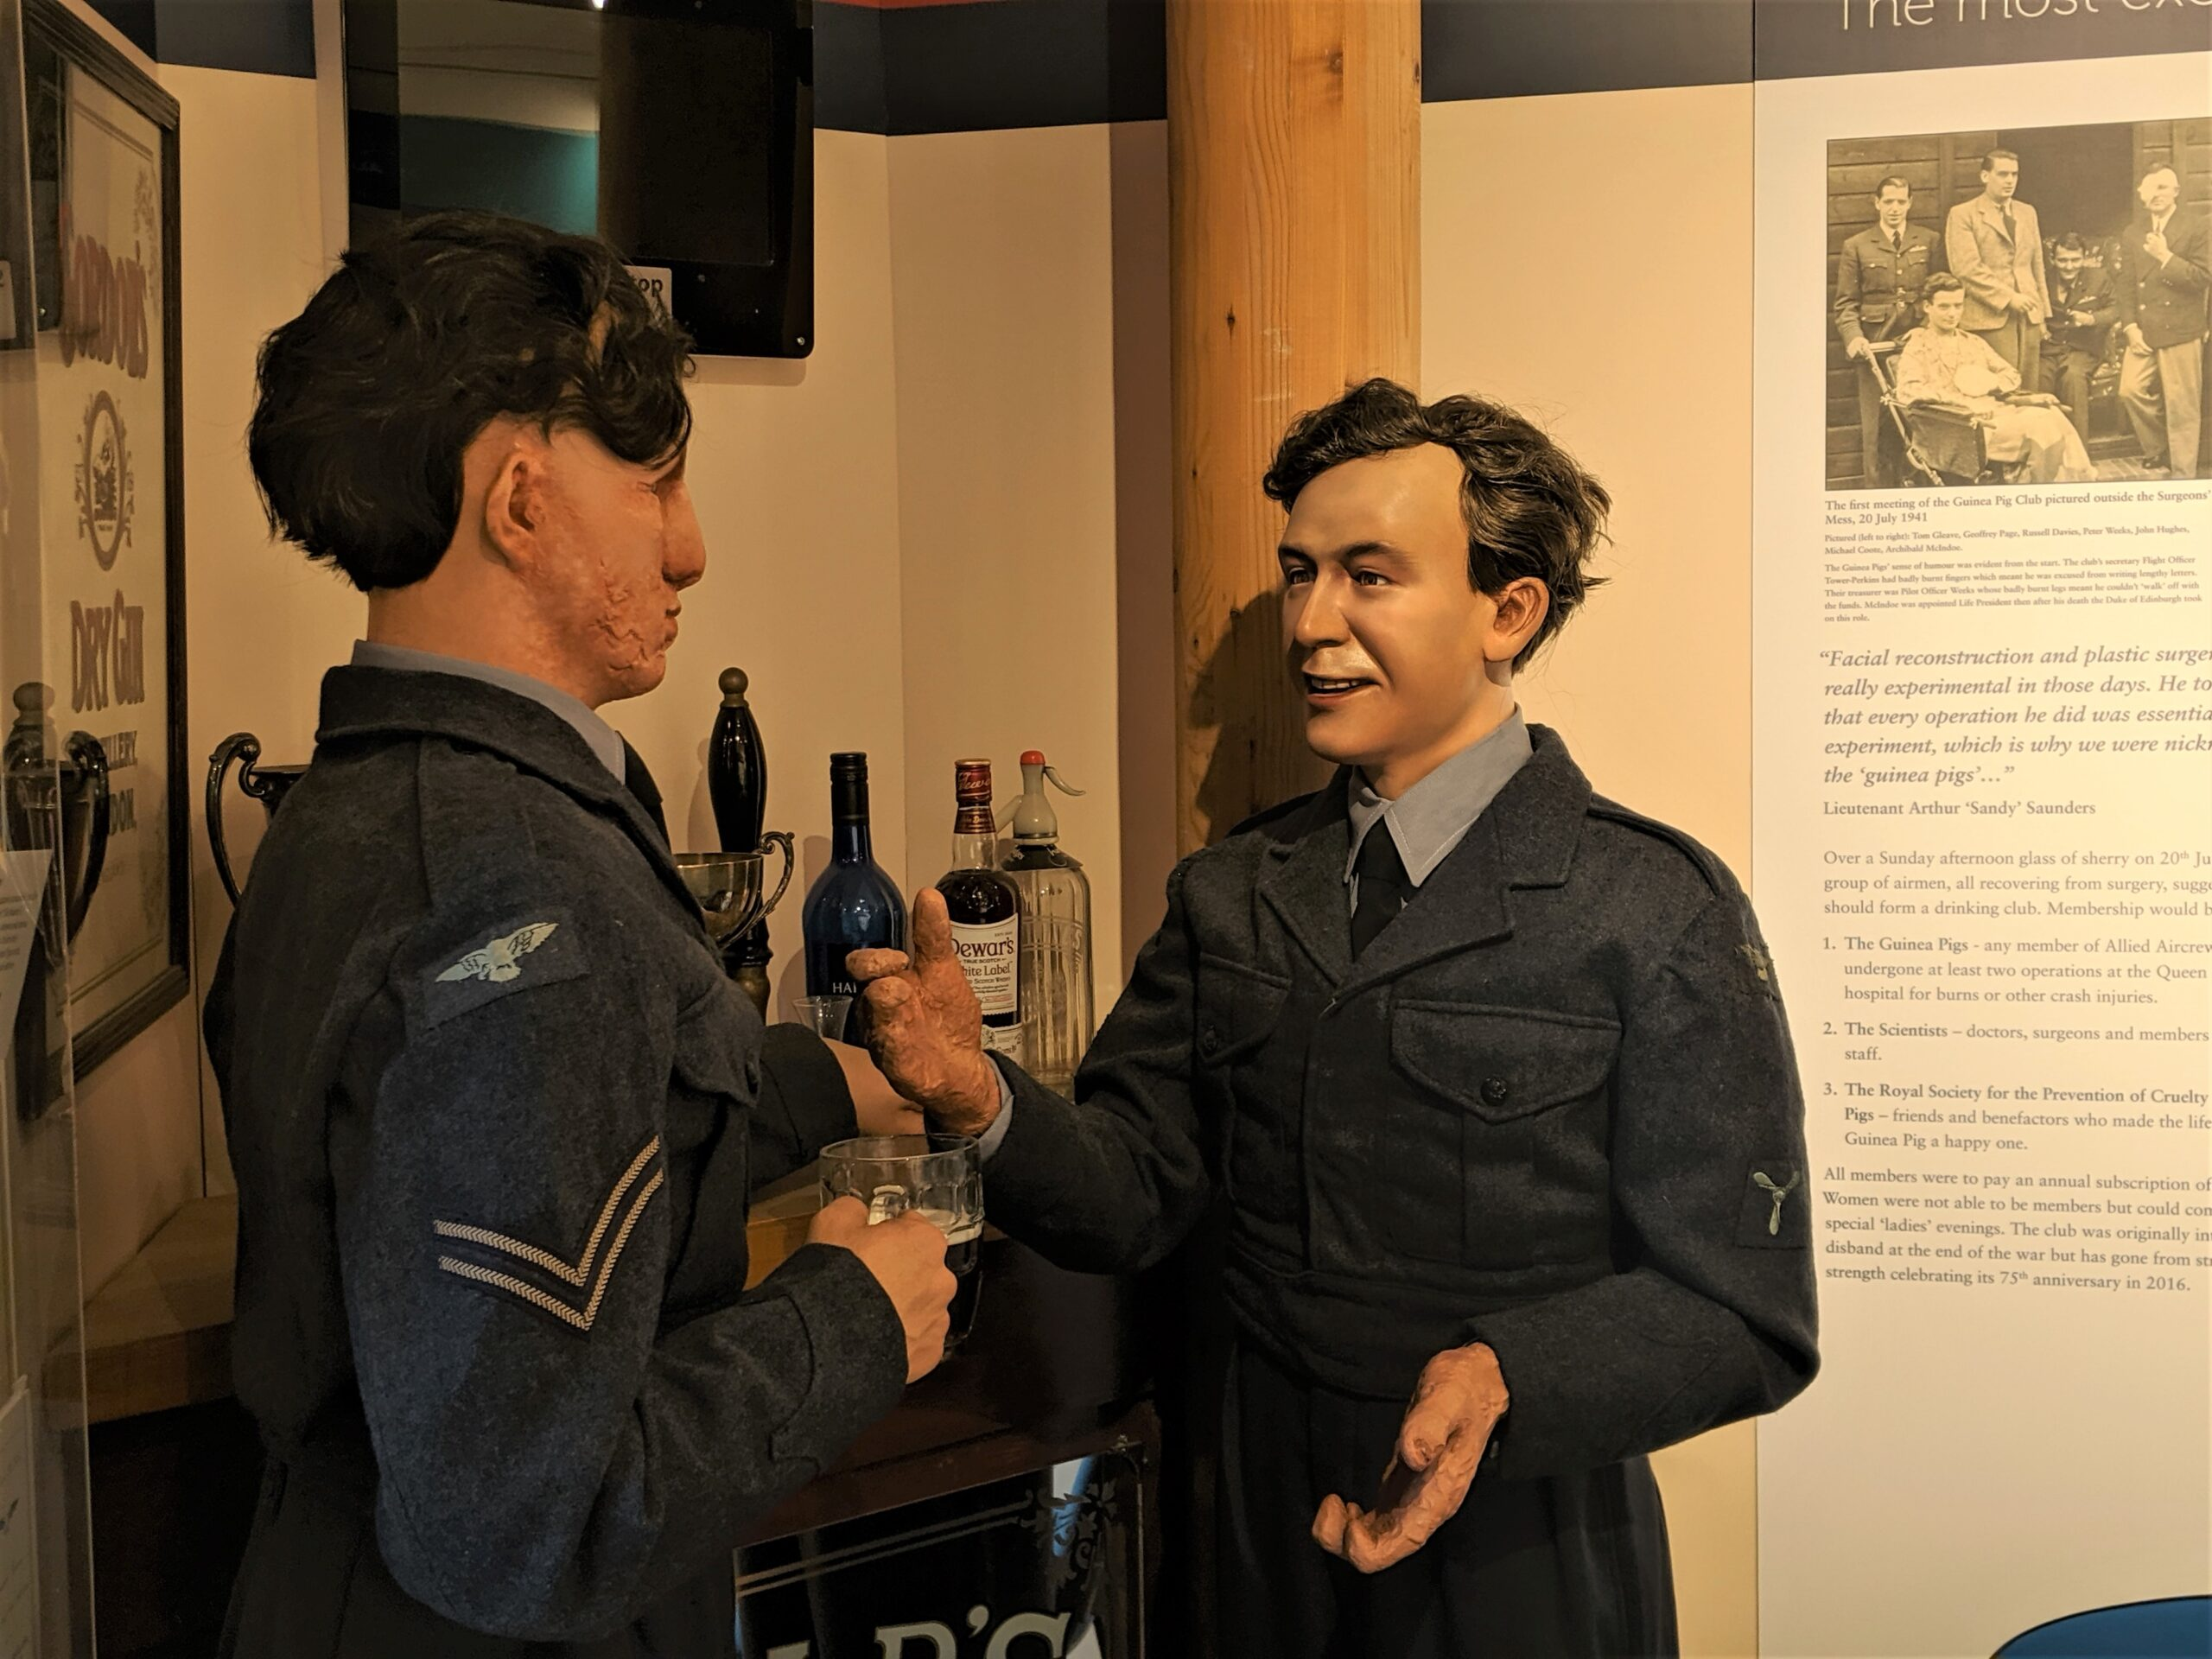 Guinea Pig Club manniquins, dressed in dark blue RAF uniforms standing at a bar